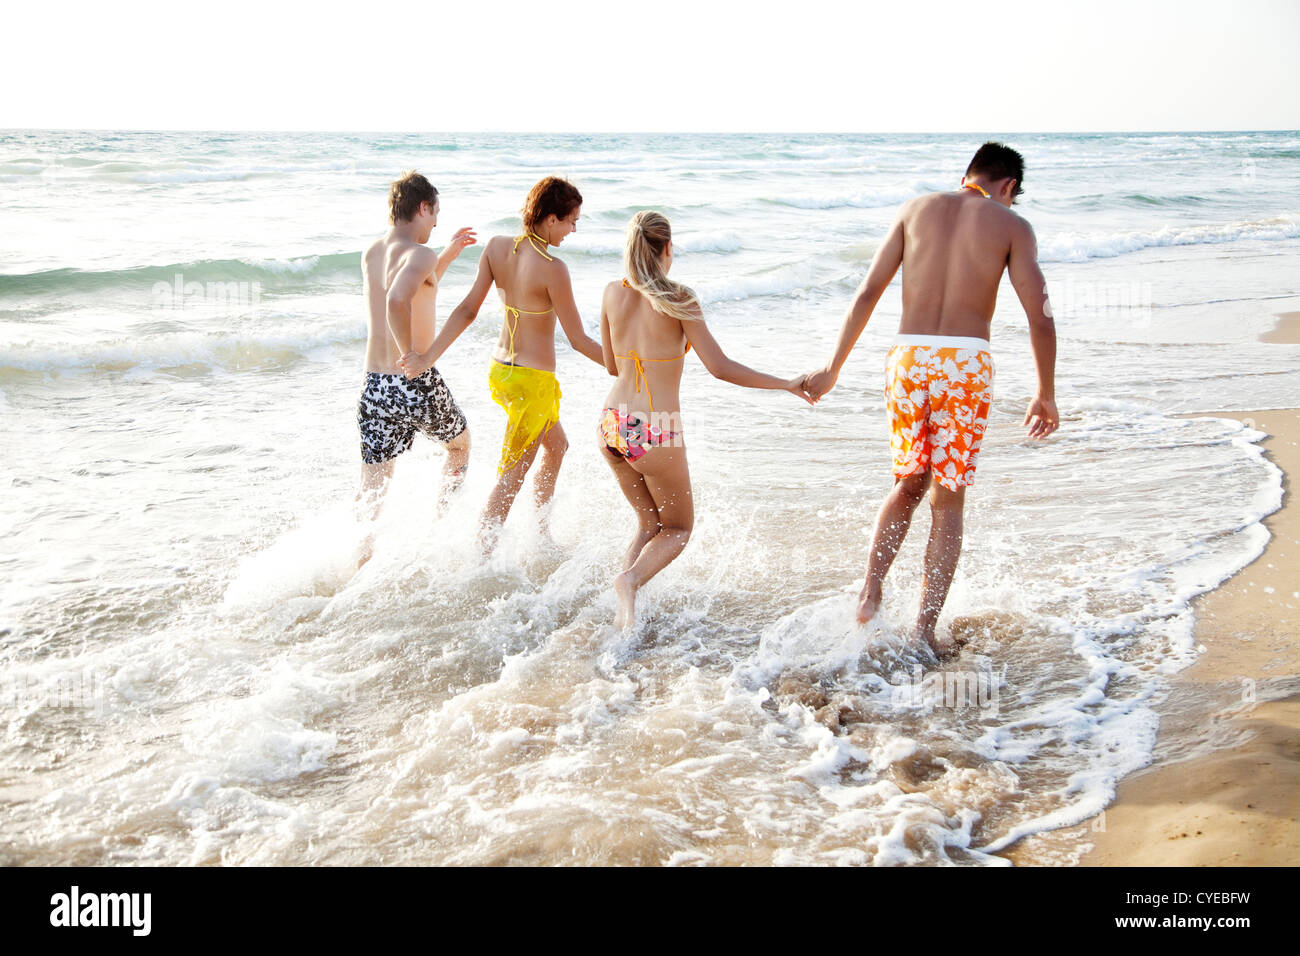 beach fun - Stock Image